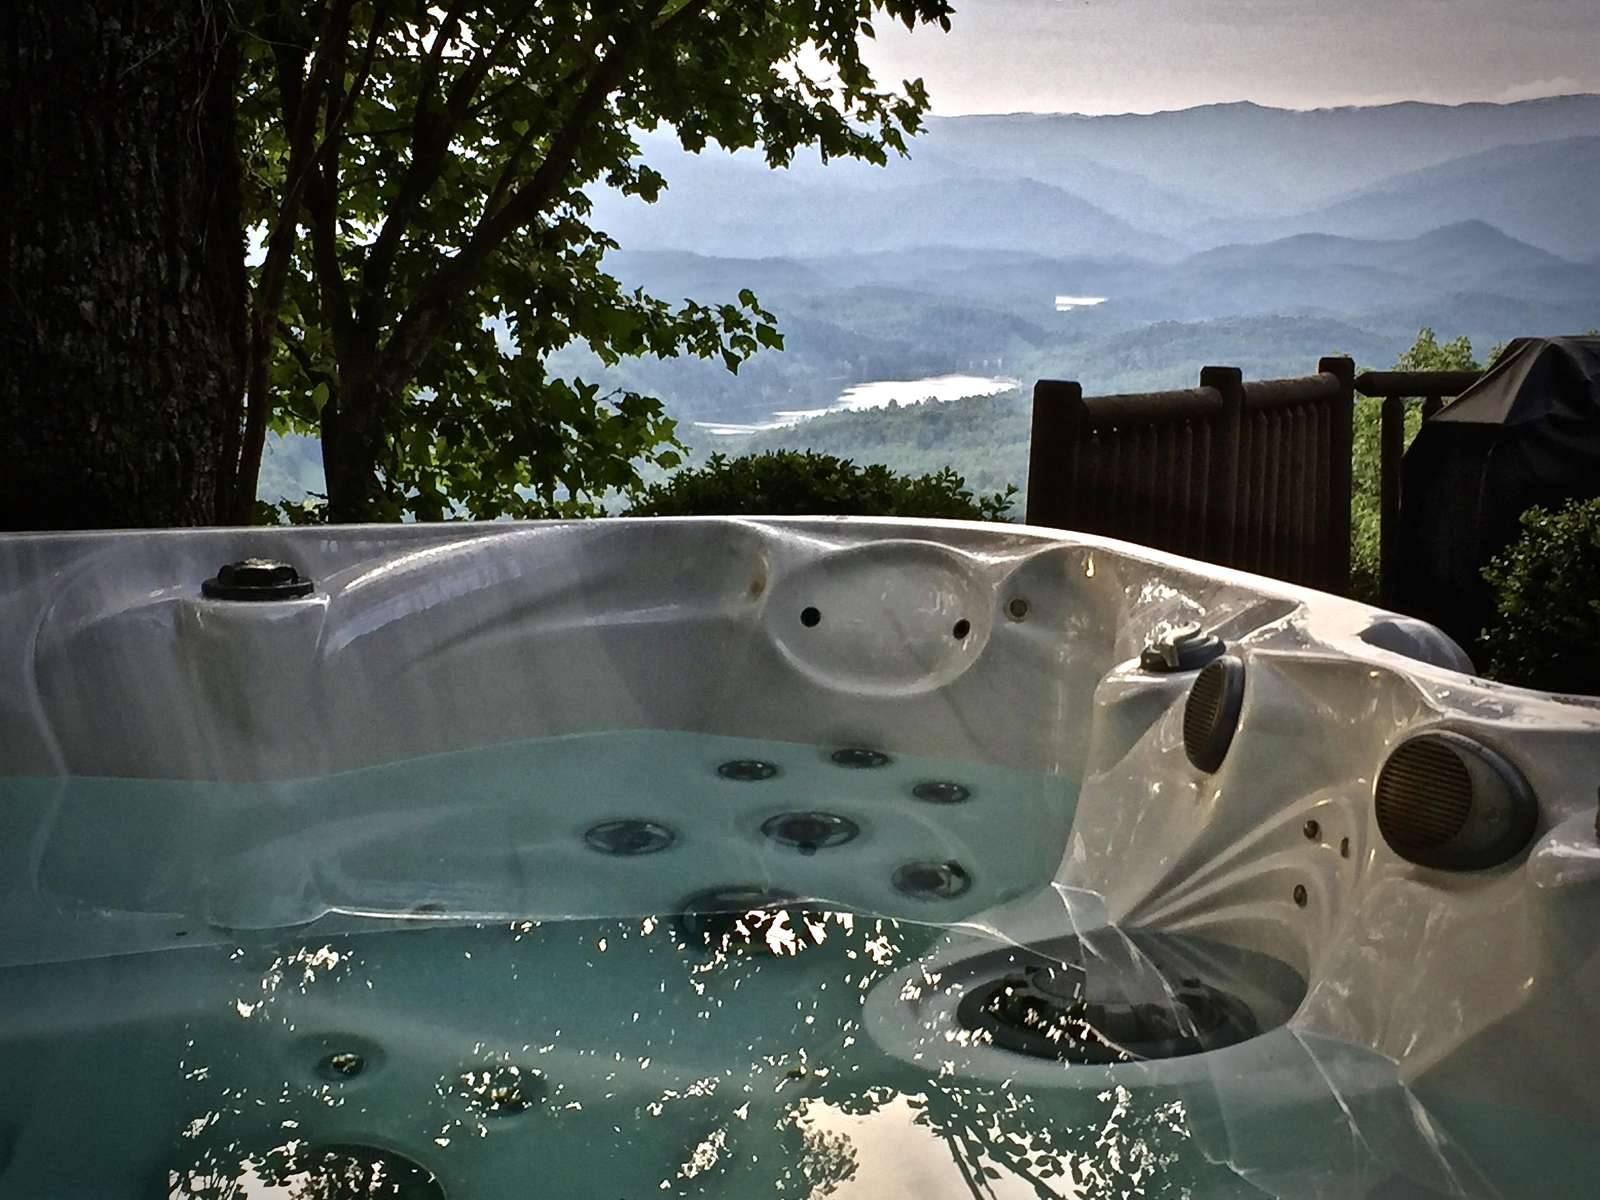 Hot Tub offers complete seclusion, star gazing, and a firefly show in the Summer!